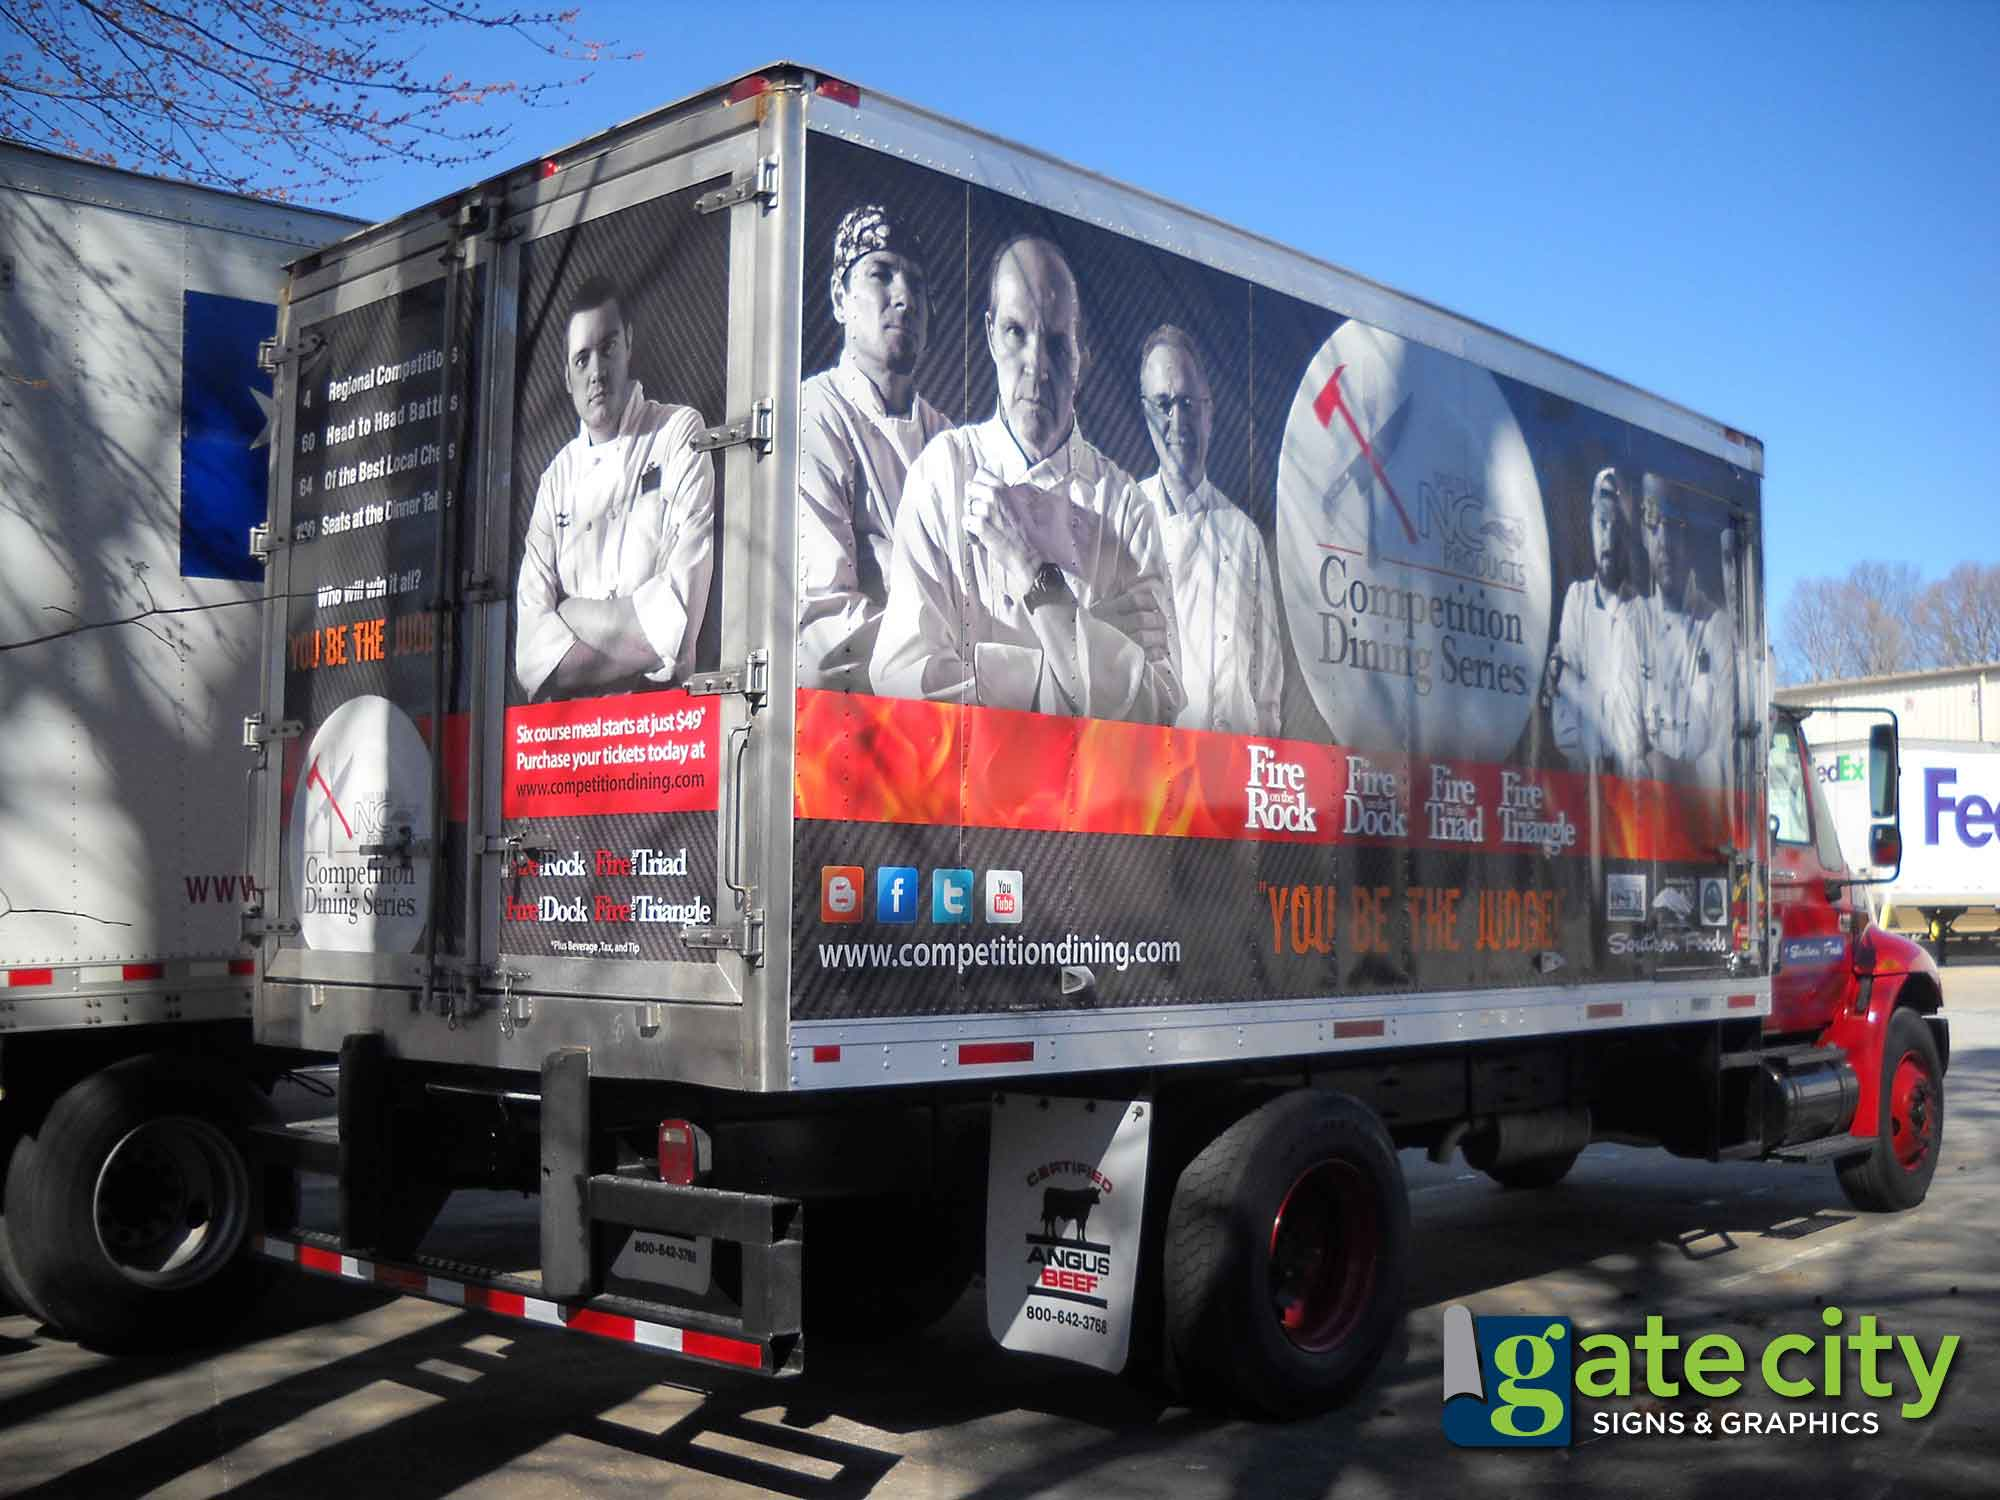 box truck wraps promote the competition dining series in greensboro nc gate city signs graphics. Black Bedroom Furniture Sets. Home Design Ideas